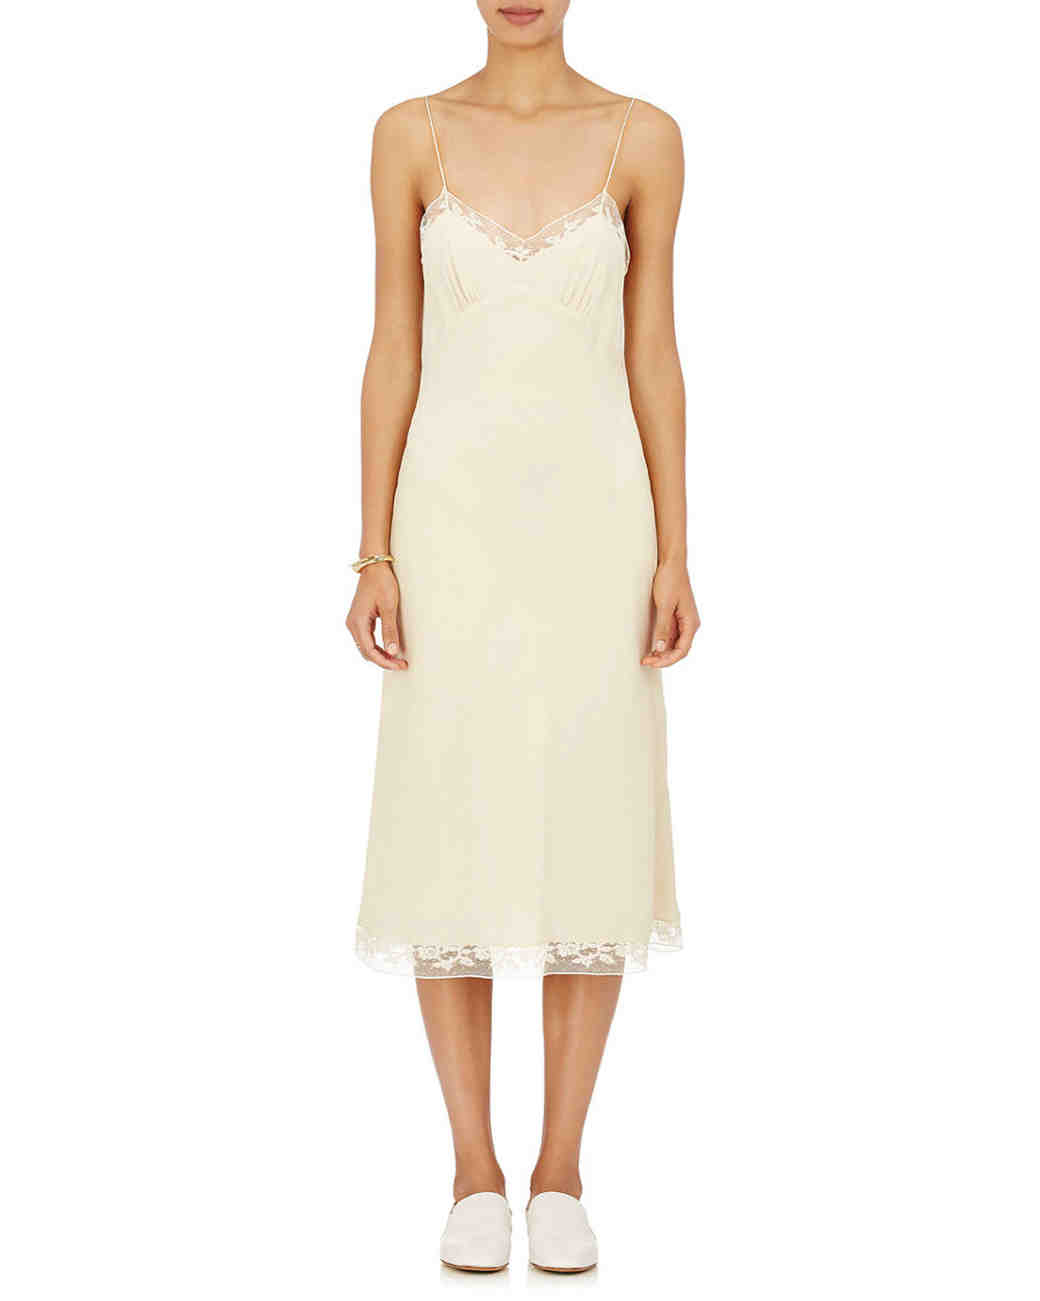 engagement party dresses the row slip dress